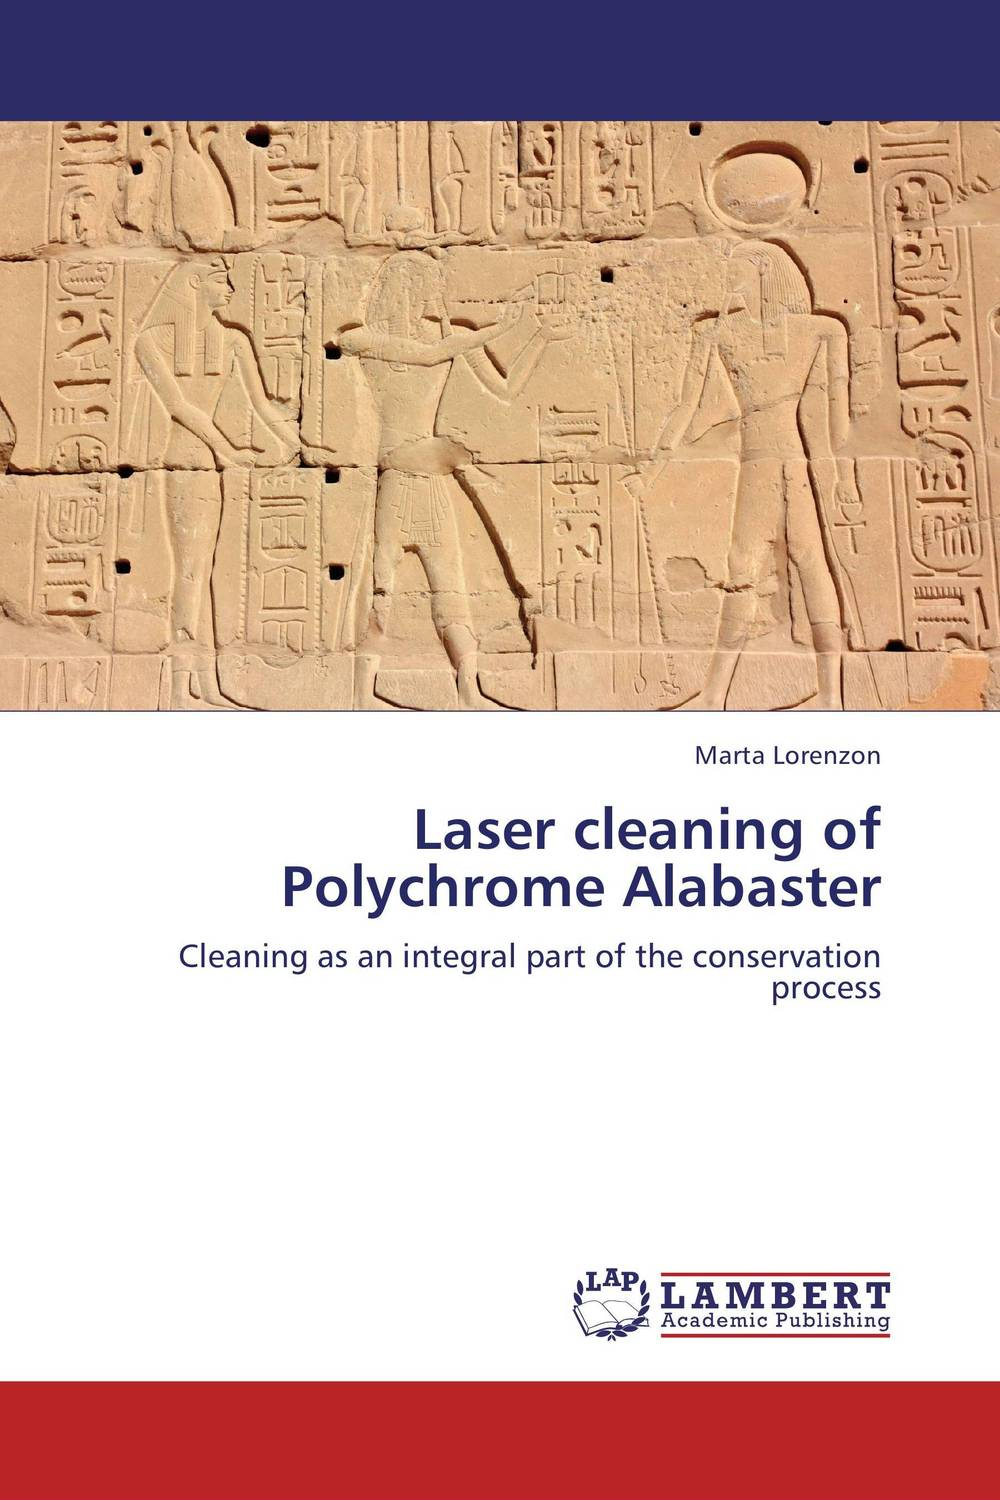 Laser cleaning of Polychrome Alabaster